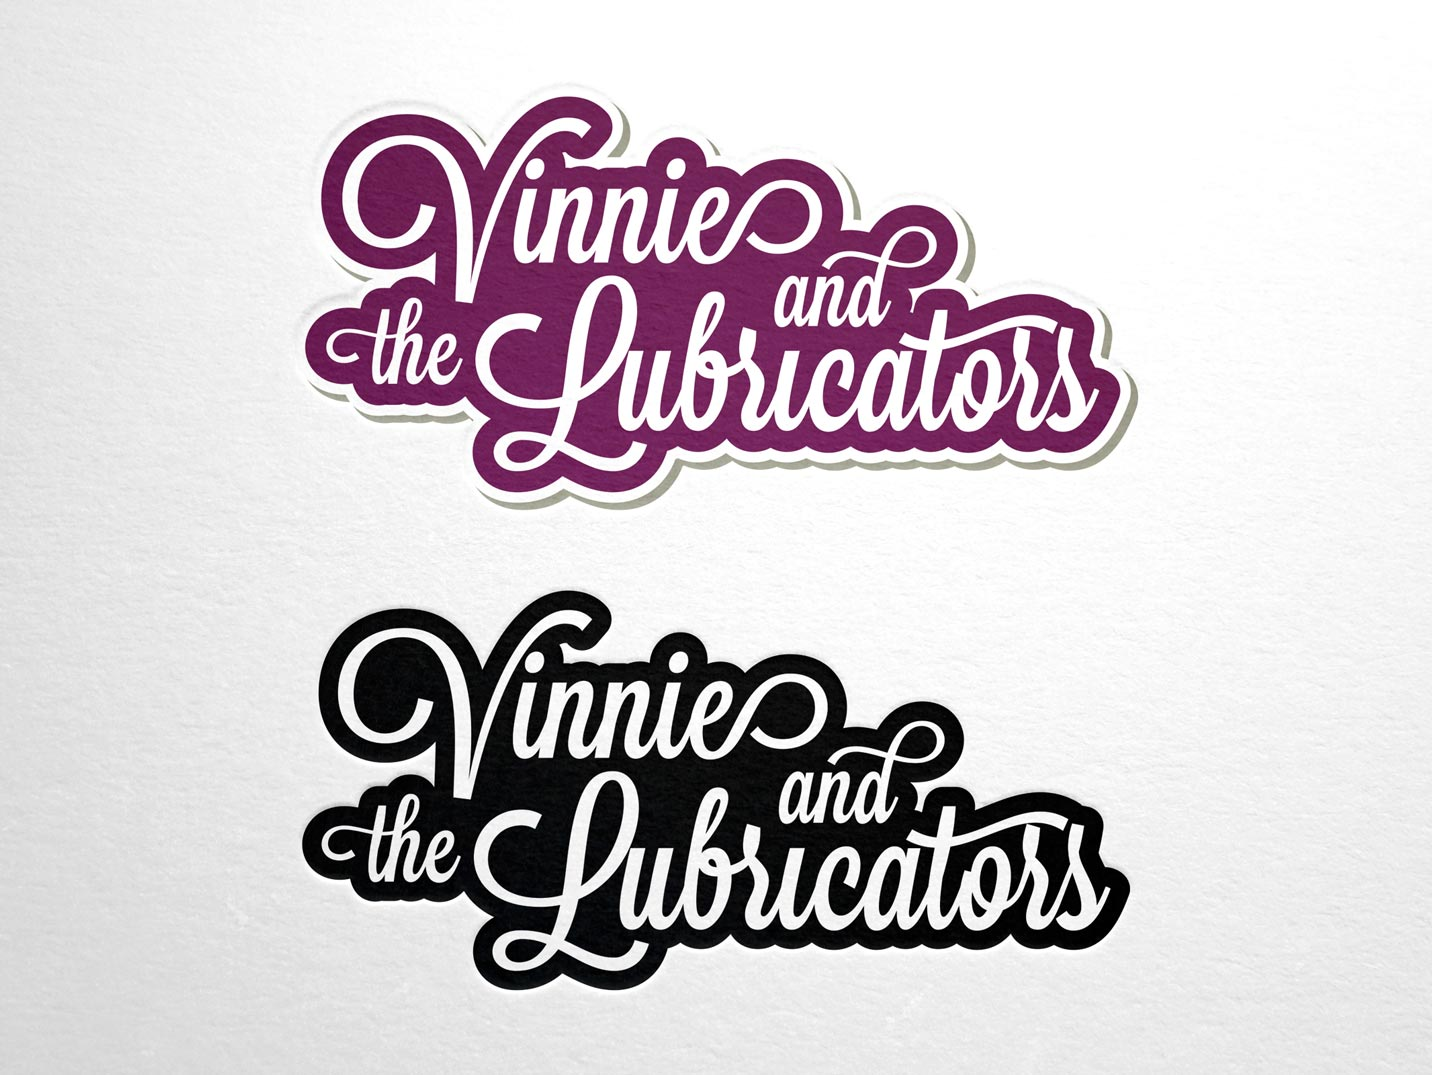 Vinnie and the Lubricators Branding